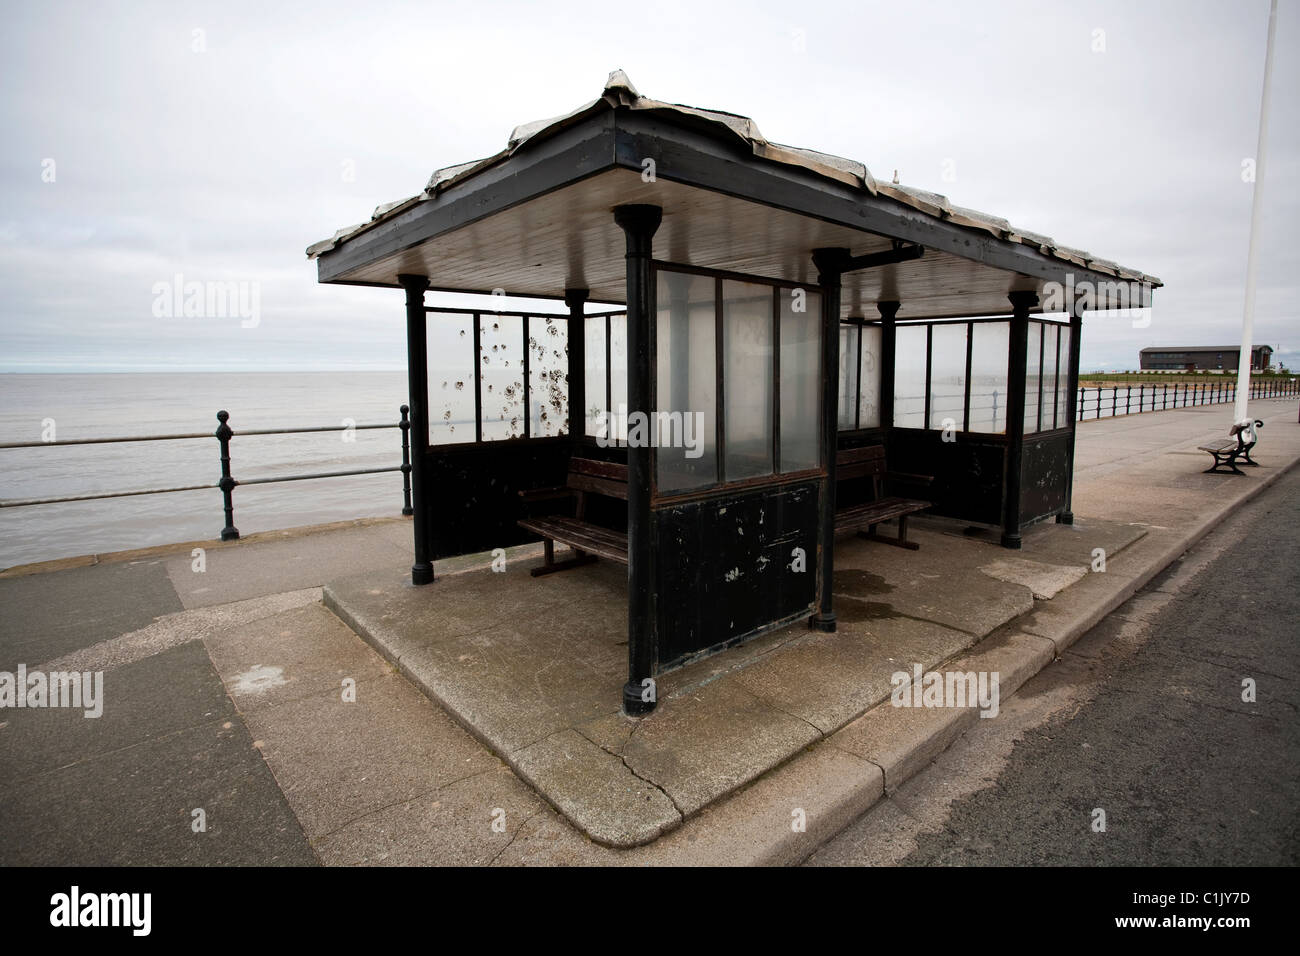 A seaside shelter on the promenade at Hoylake, Wirral, NW UK. This image looks out towards Hoyle Bank Stock Photo